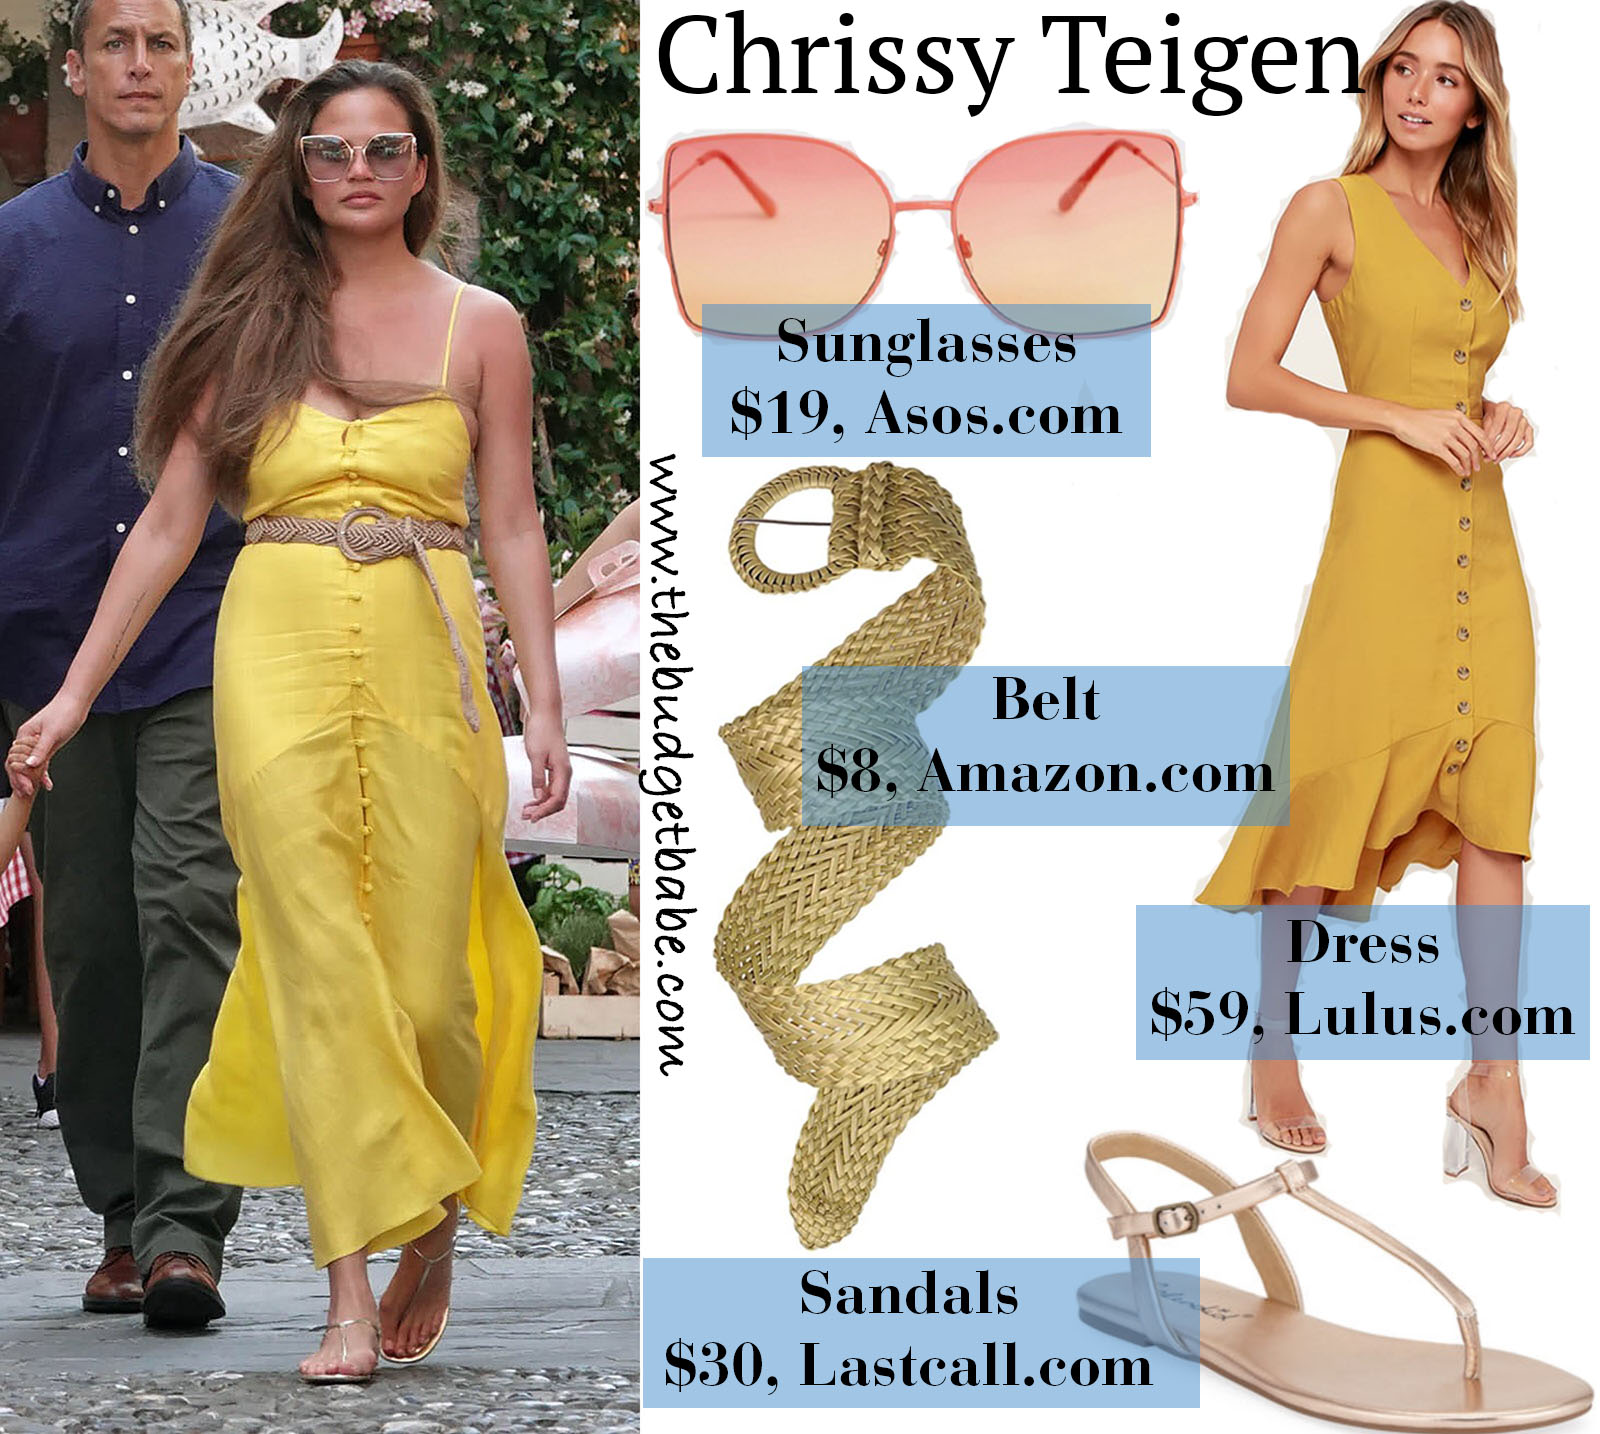 Chrissy Teigen's yellow maxi dress look for less as seen in Portofino